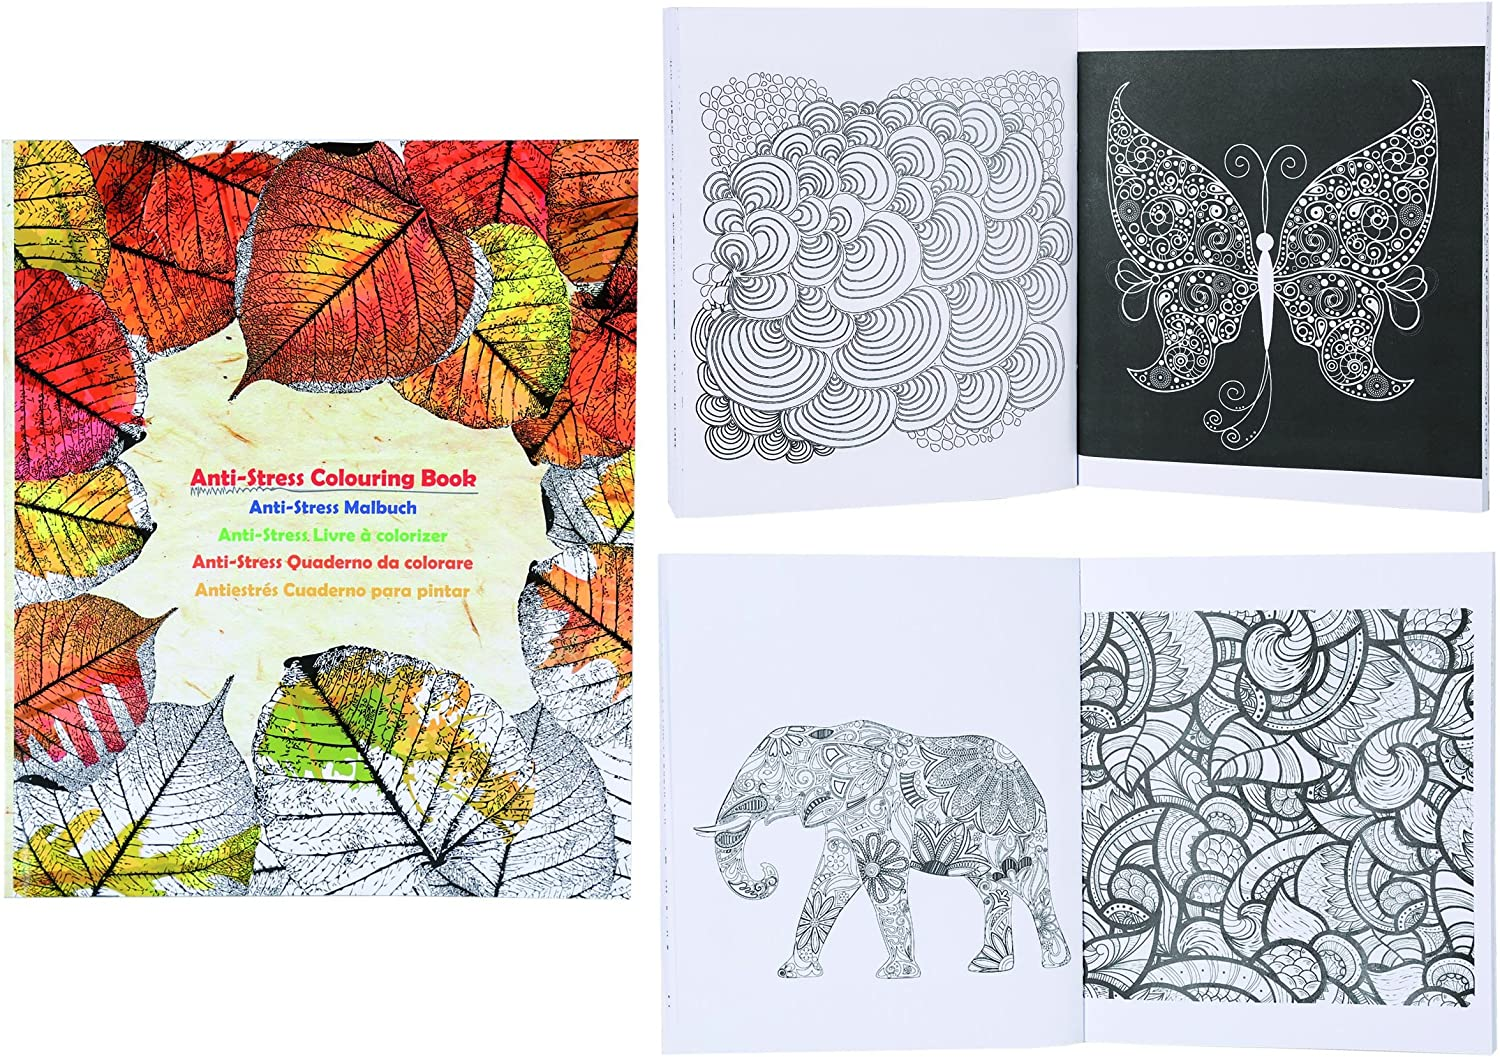 Perfect present gift. Antistress colouring colouring colouring book. Great for wet days B07KWWW4ZP | Niedriger Preis